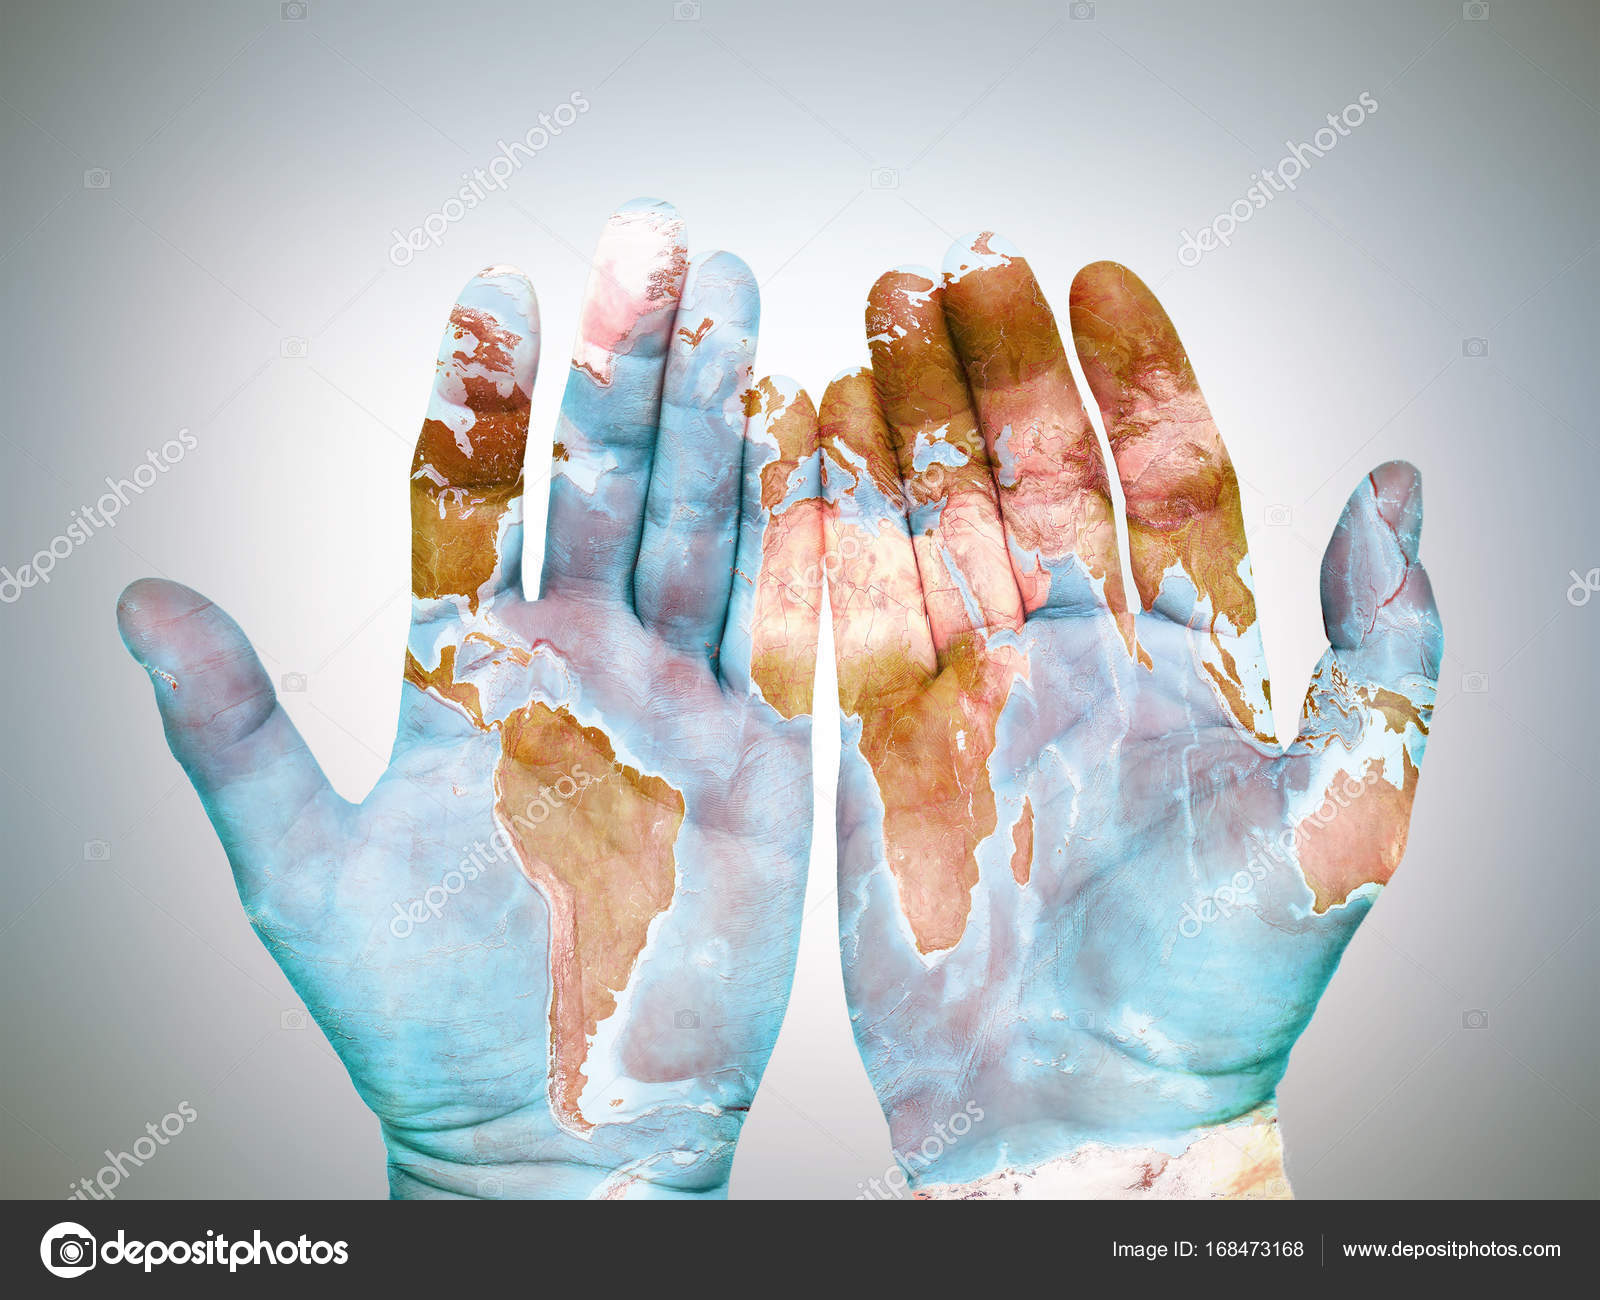 World Map On Hands.Hands With World Map Stock Photo C Pryzmat 168473168